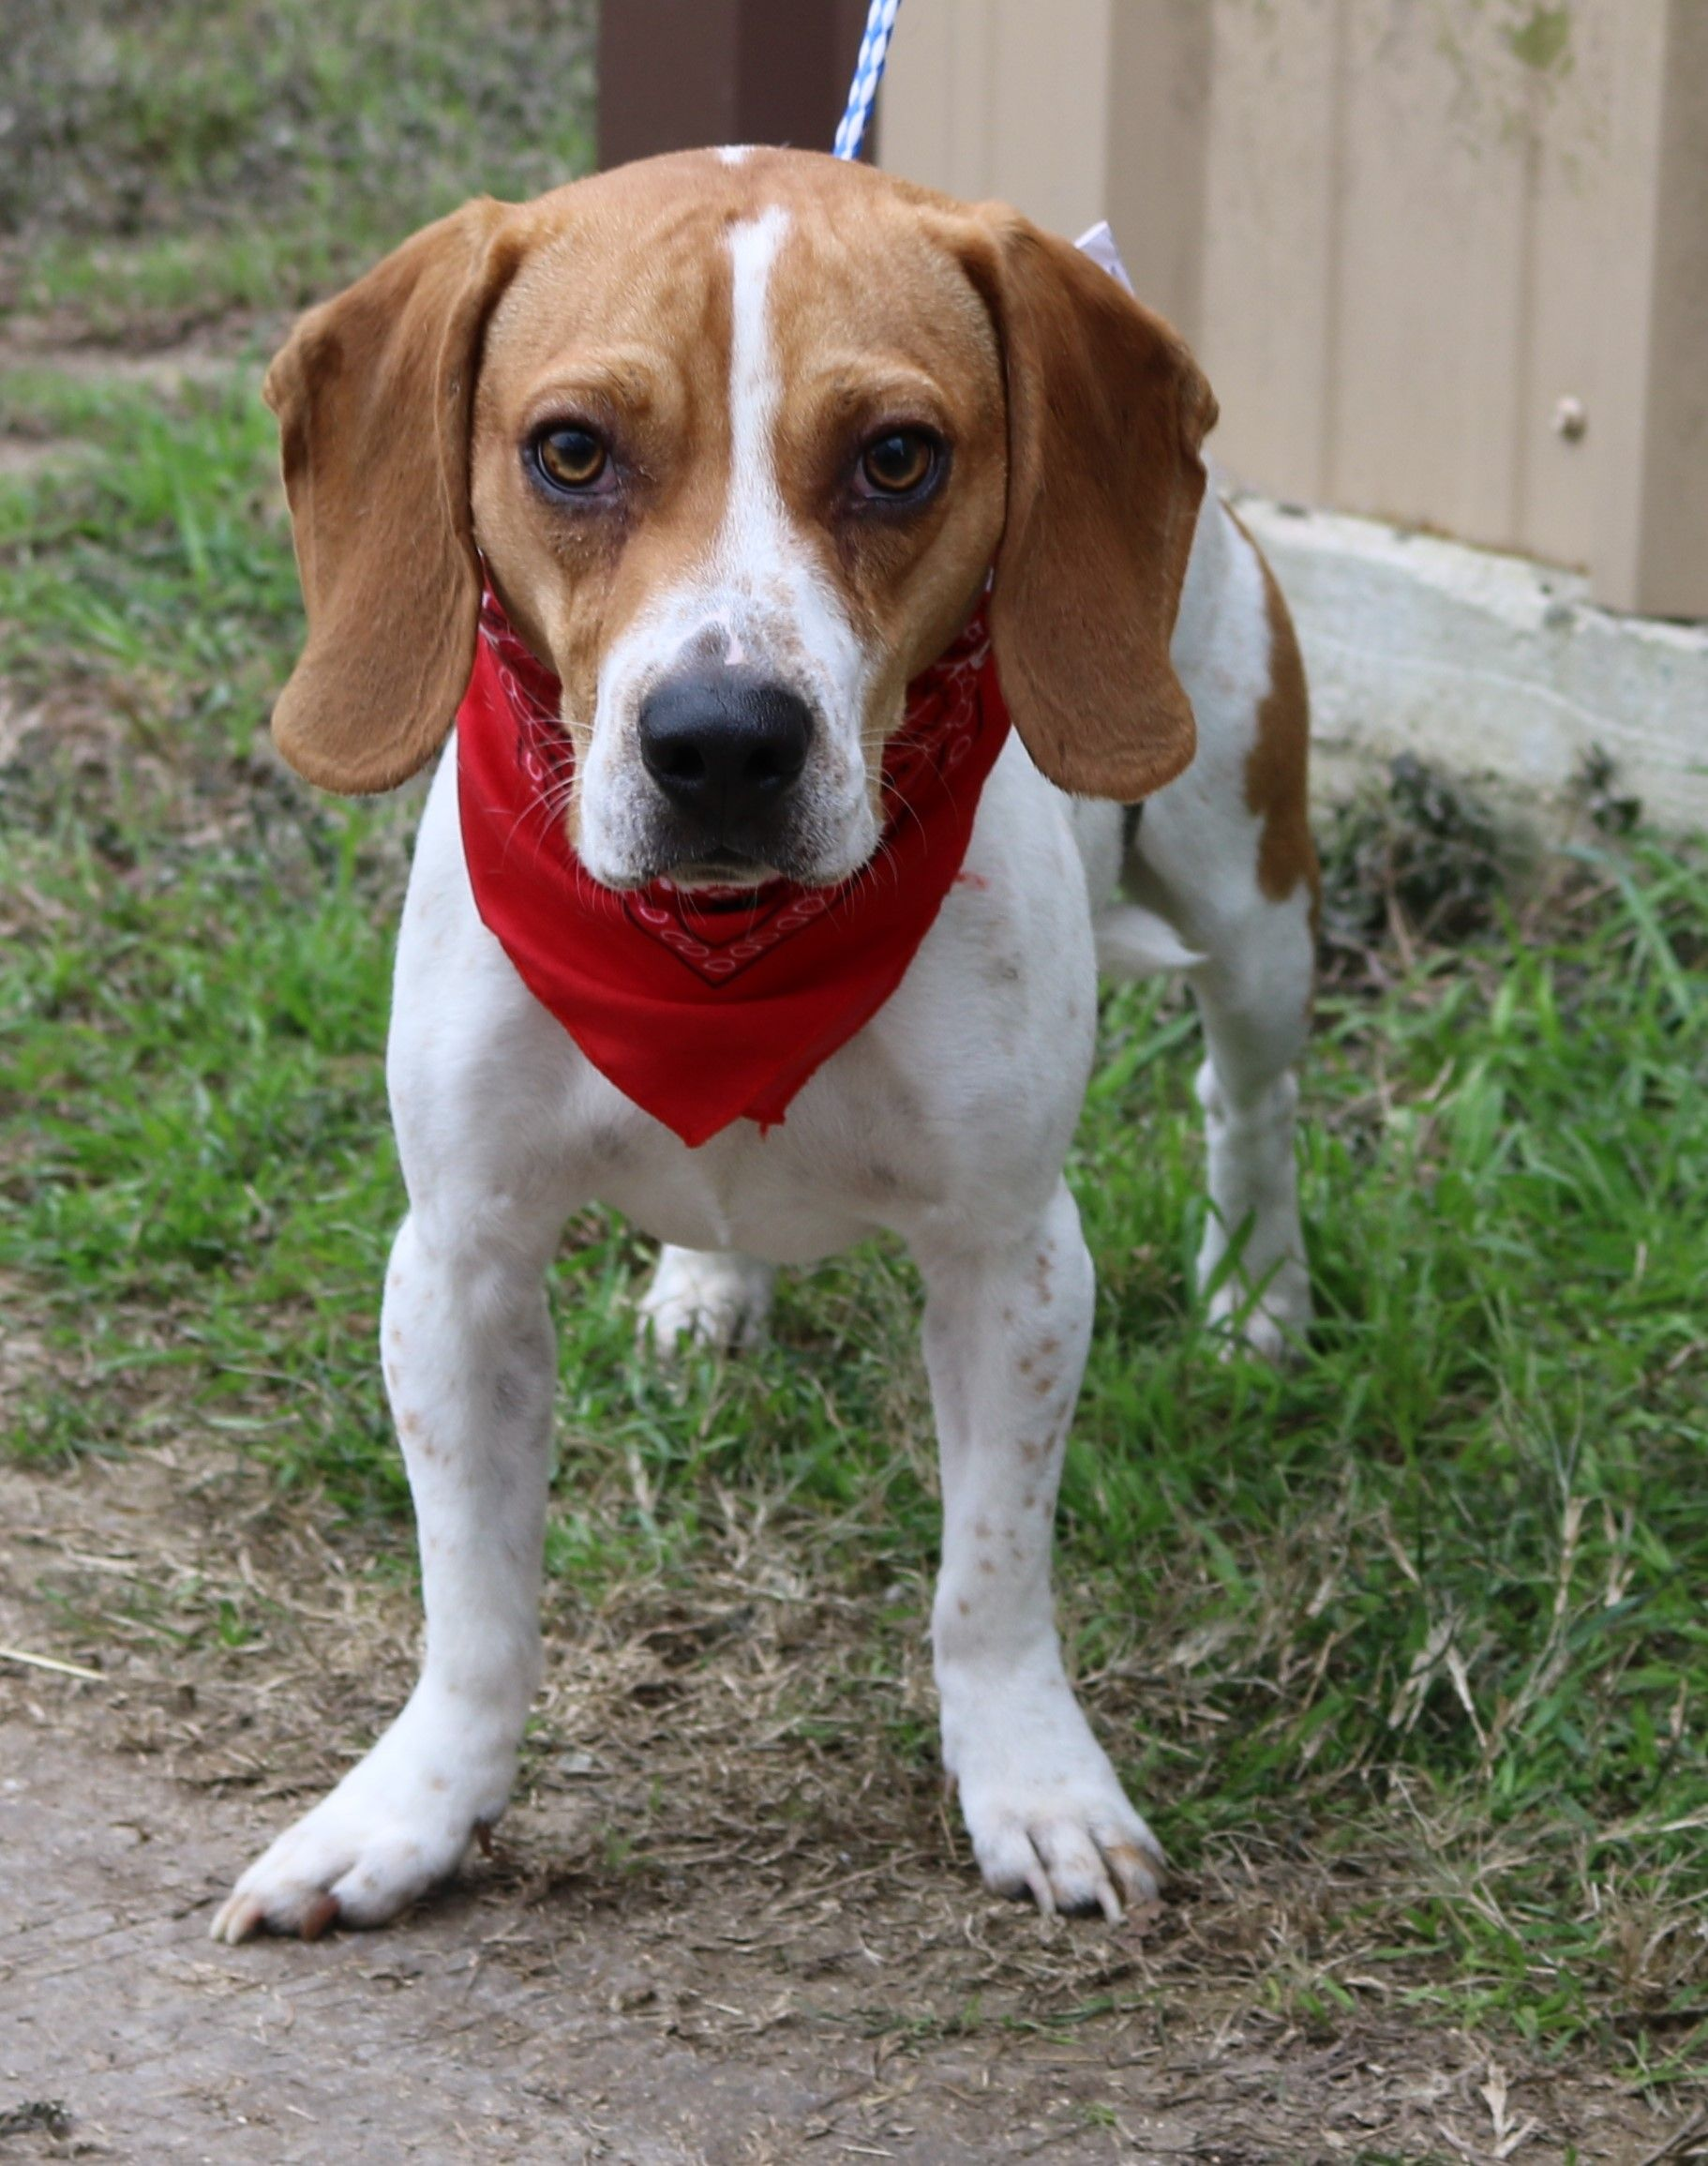 Beagle Dog For Adoption In Bandera Tx Adn 765786 On Puppyfinder